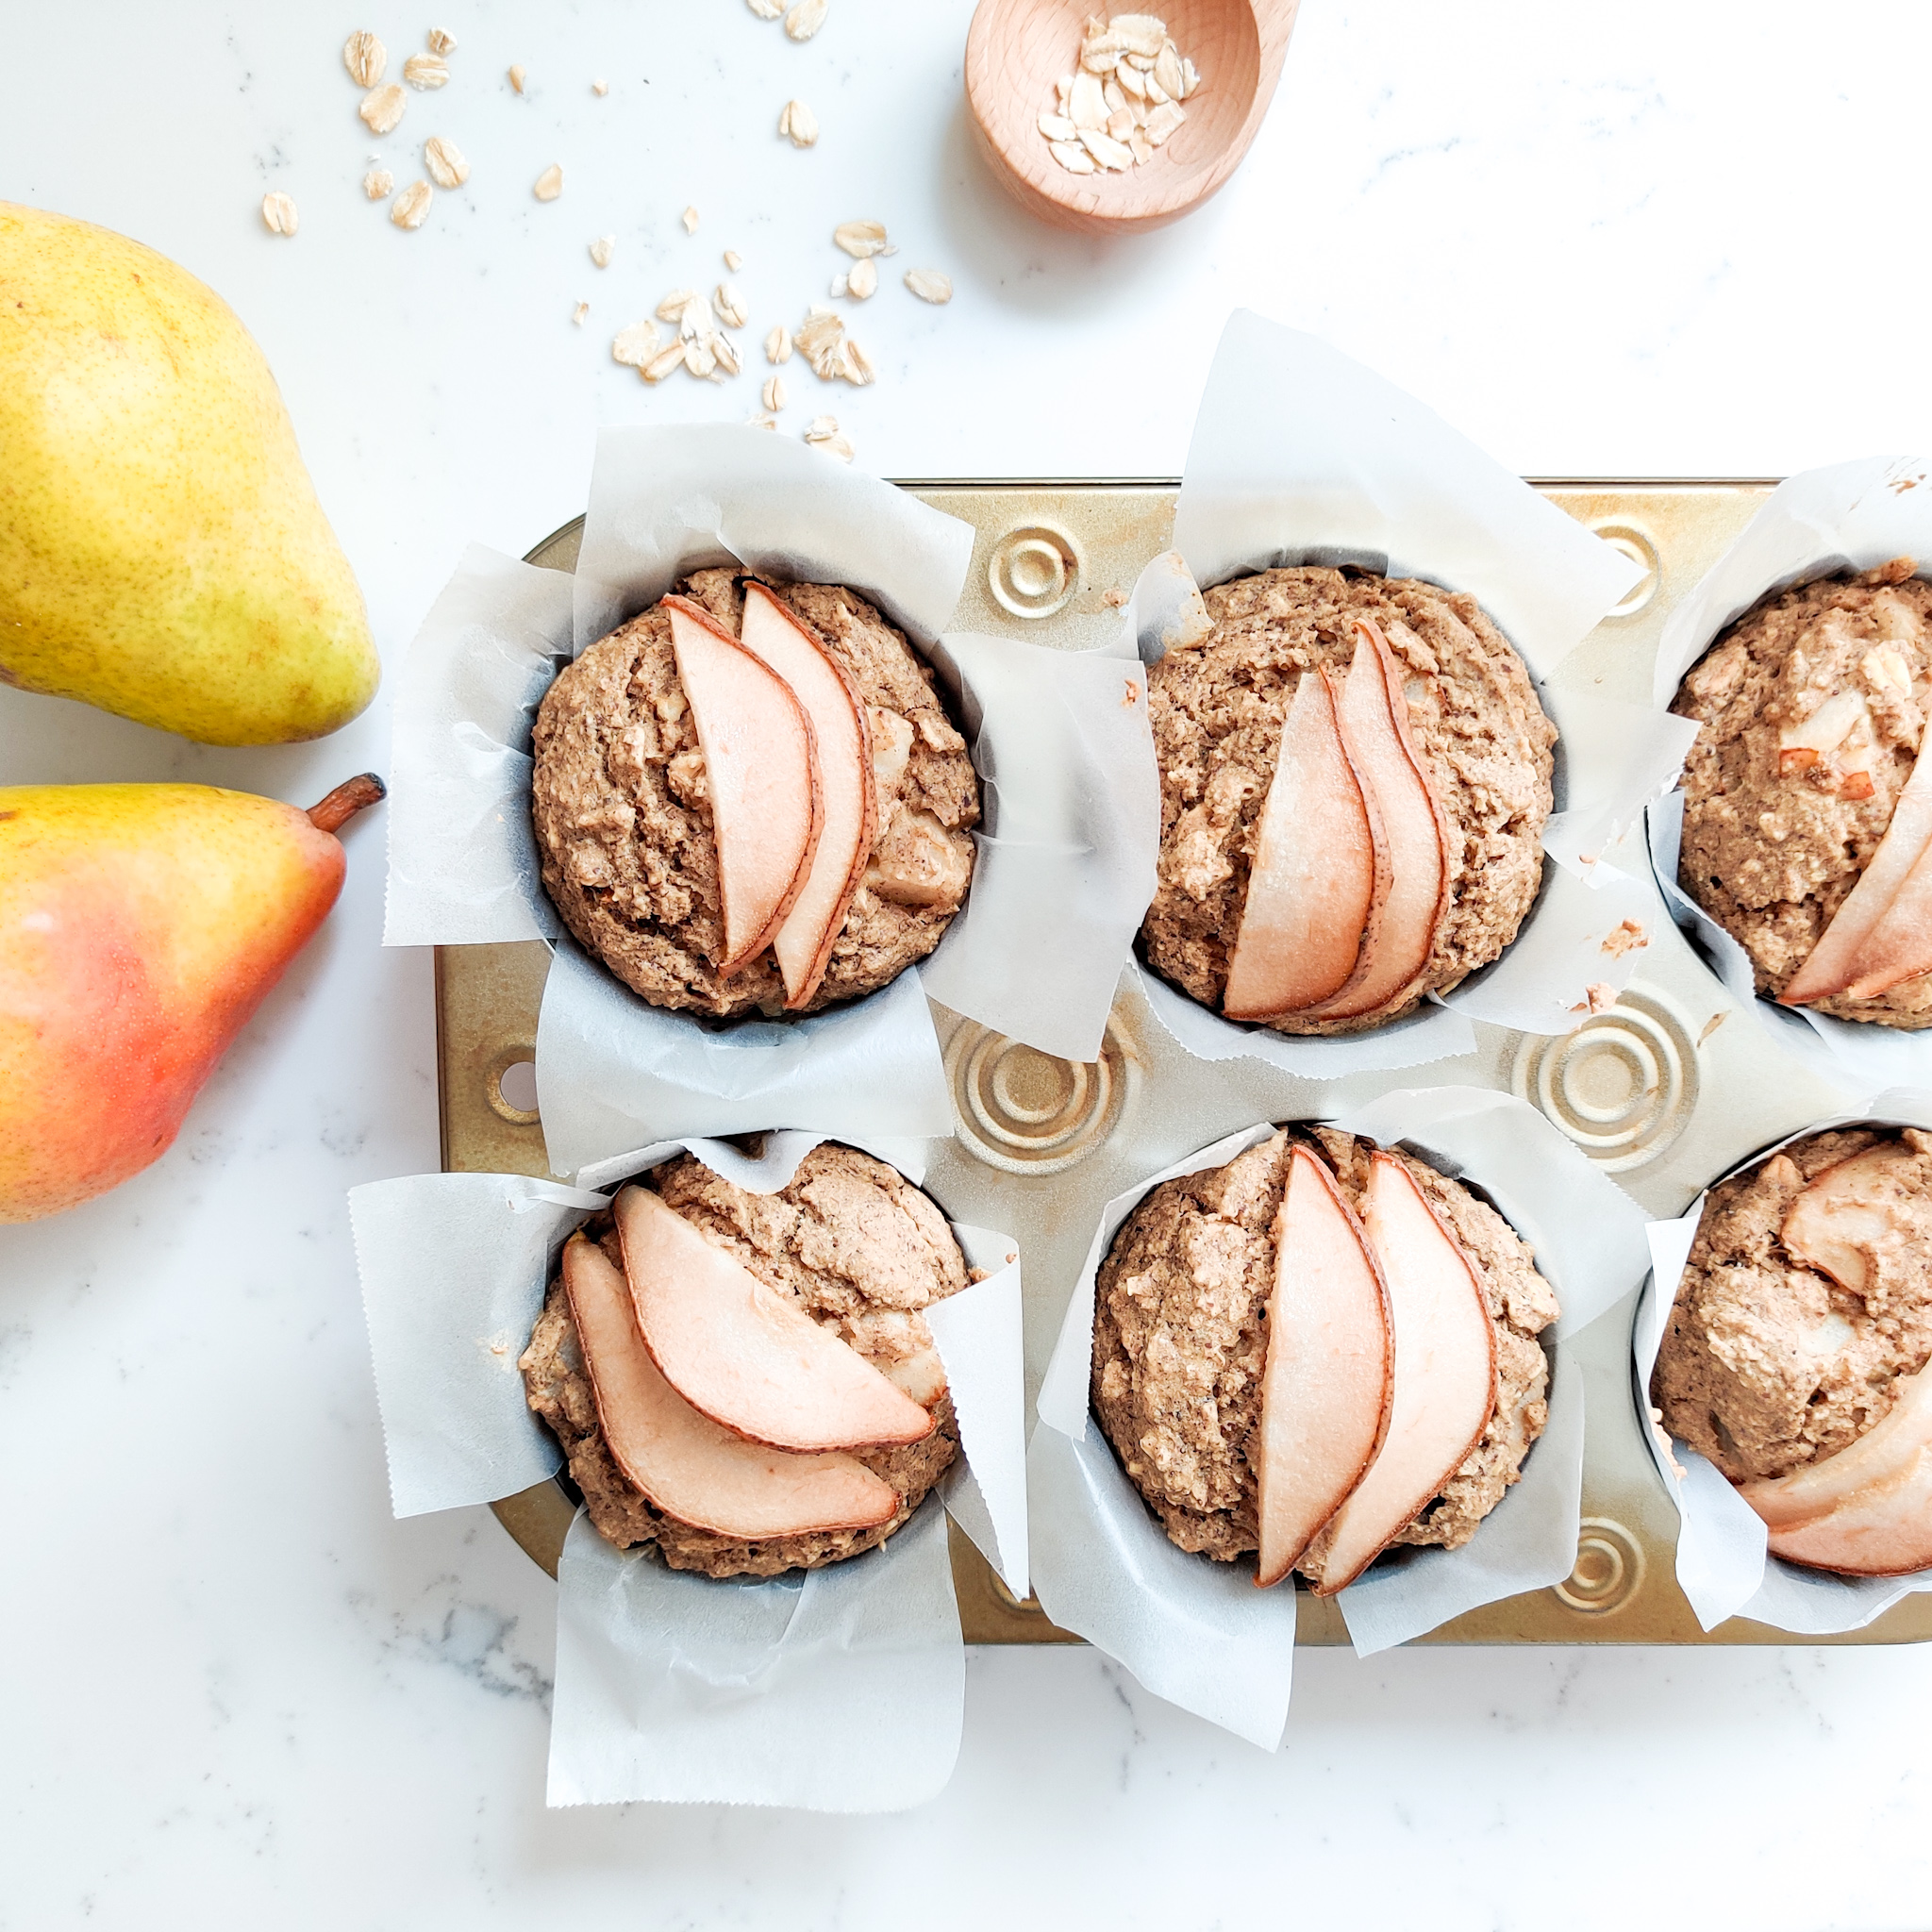 CInnamon and Pear Oatmeal Muffins